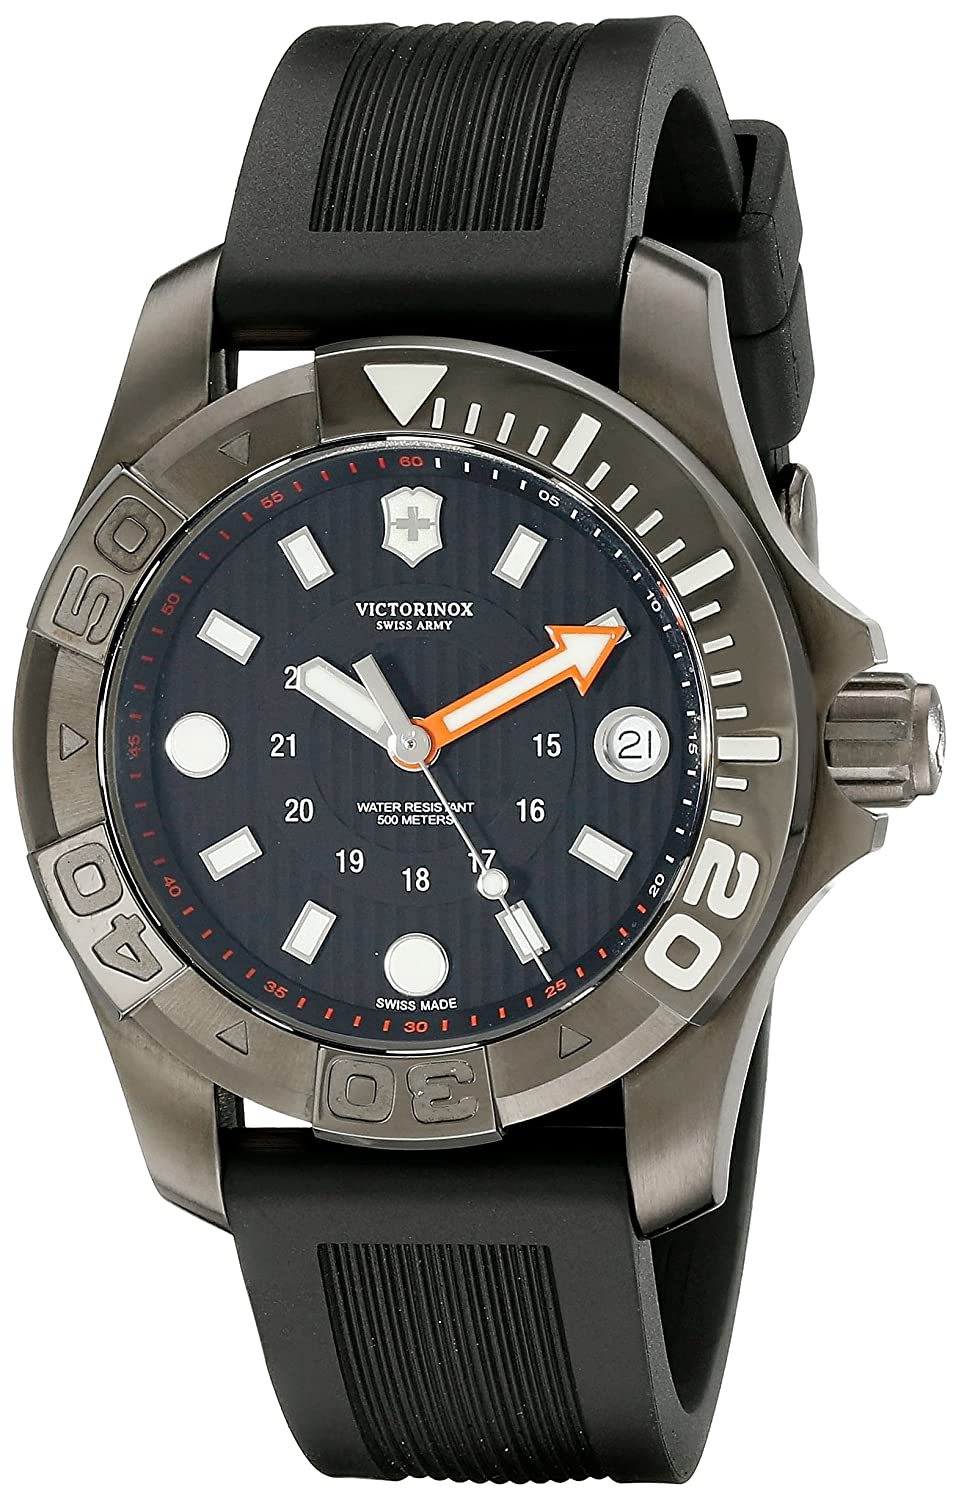 a19677a87b4d Amazon.com  Victorinox Swiss Army Dive Black Dial SS Rubber Quartz Men s  Watch 241555  Swiss Army  Watches